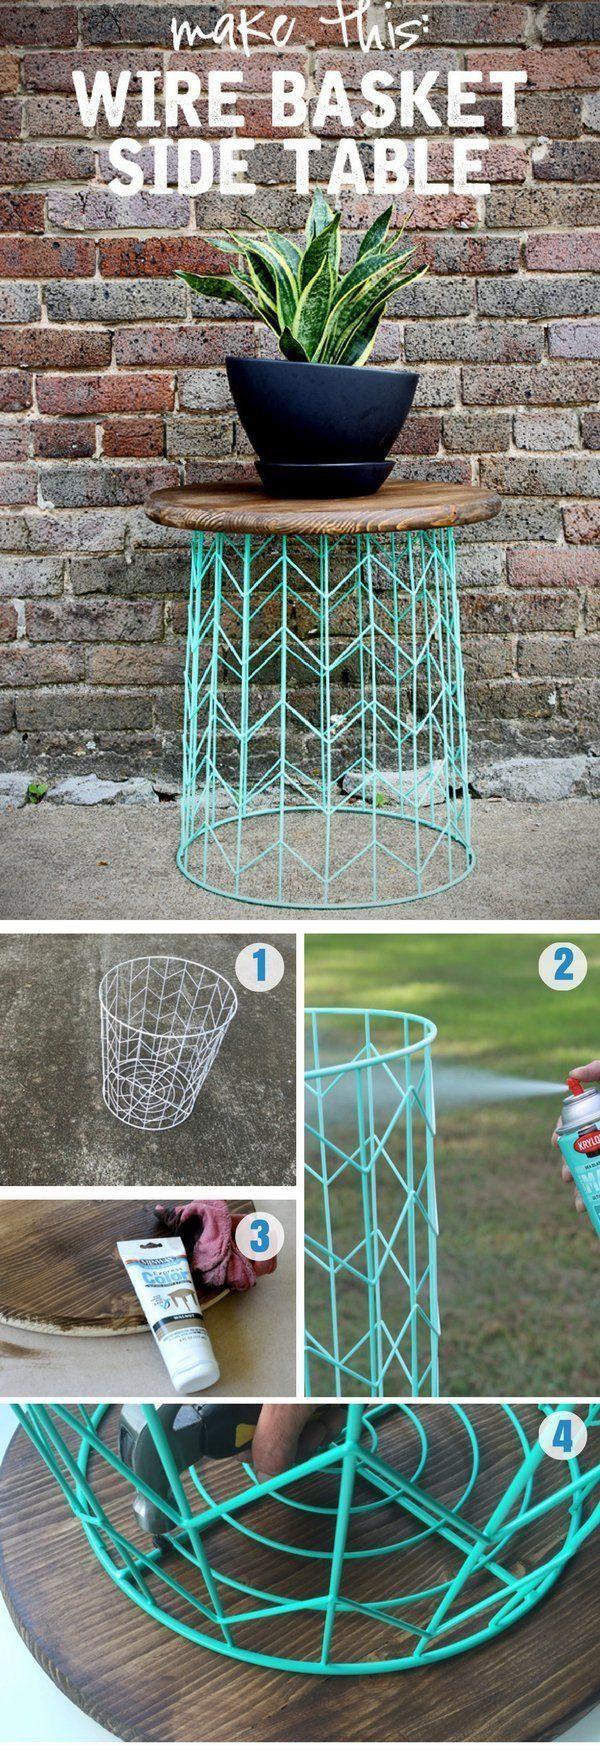 Home Decor Diy best 20+ diy home decor ideas on pinterest | diy house decor, diy